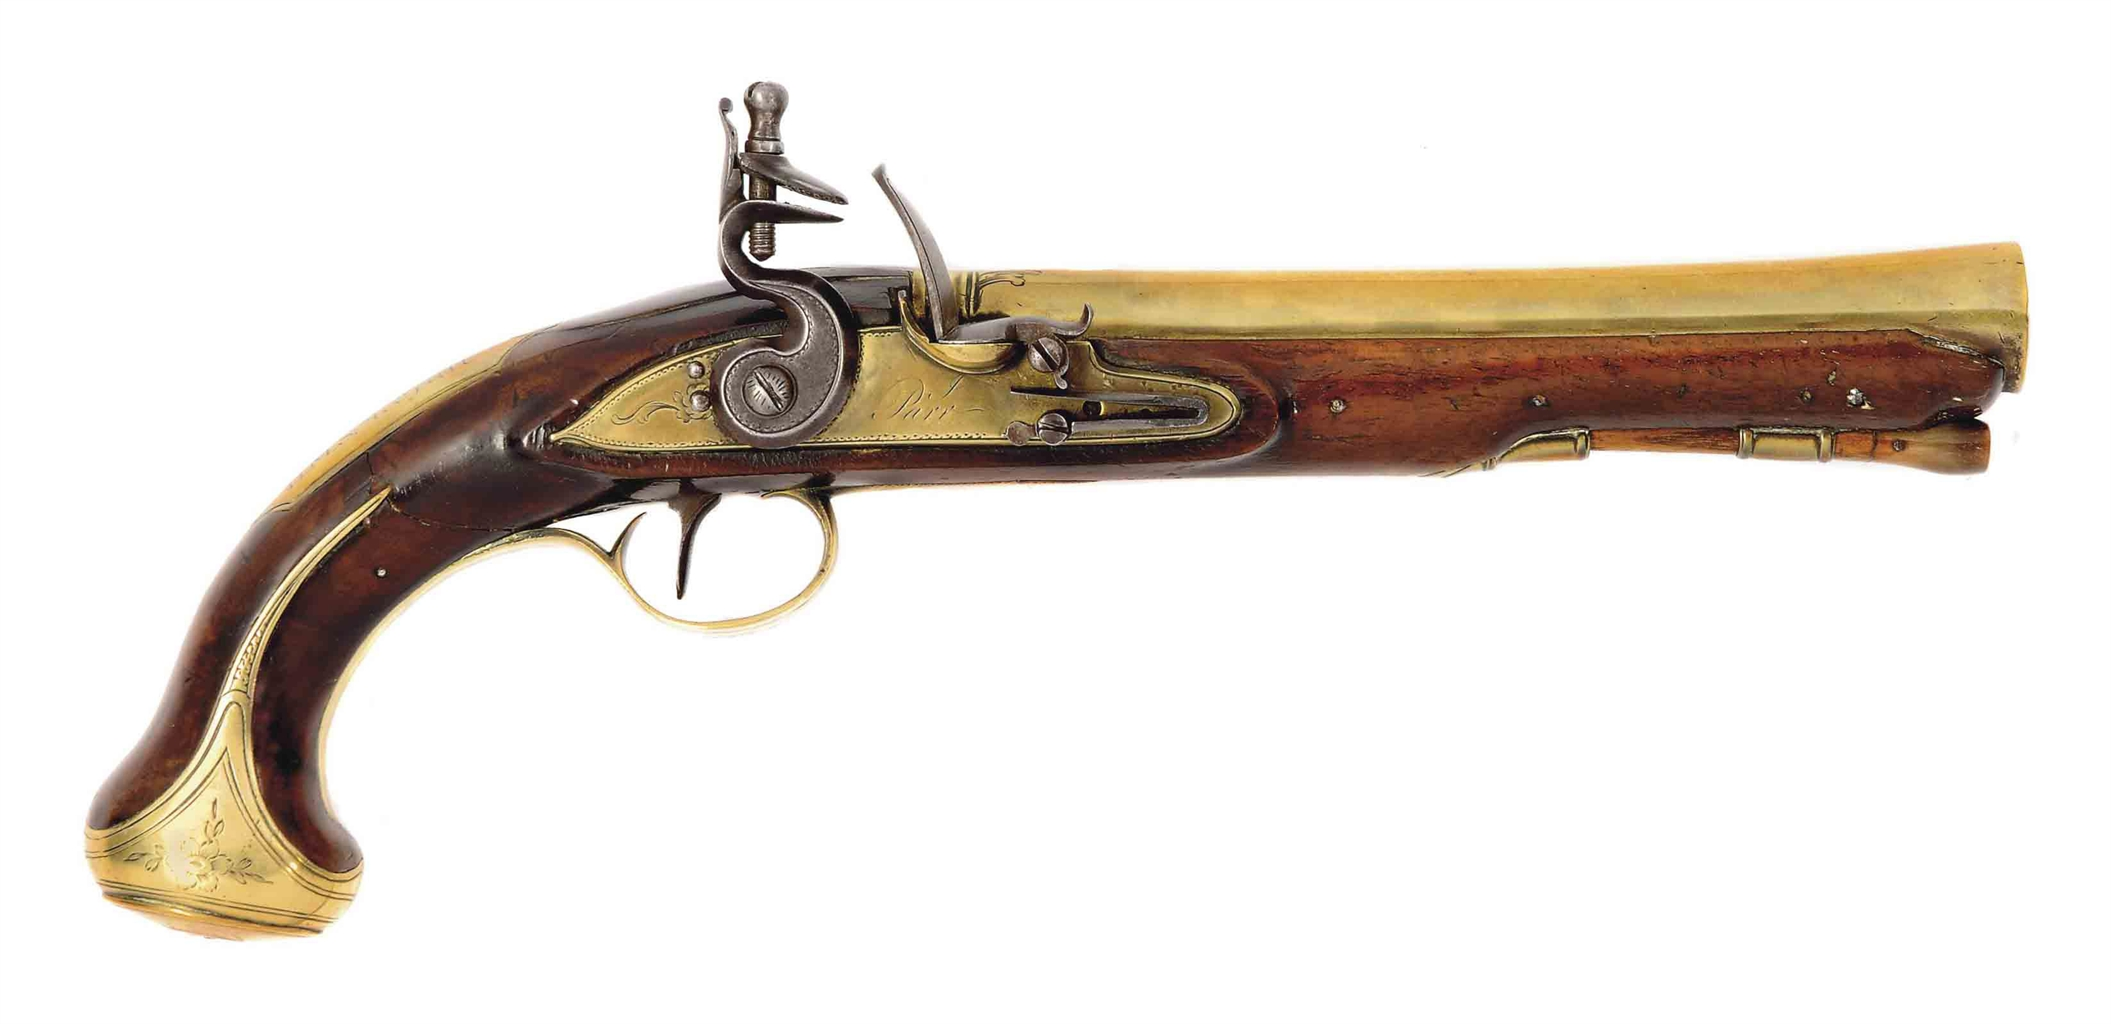 Blunderbuss - 20 antique guns that fetched big bucks ...